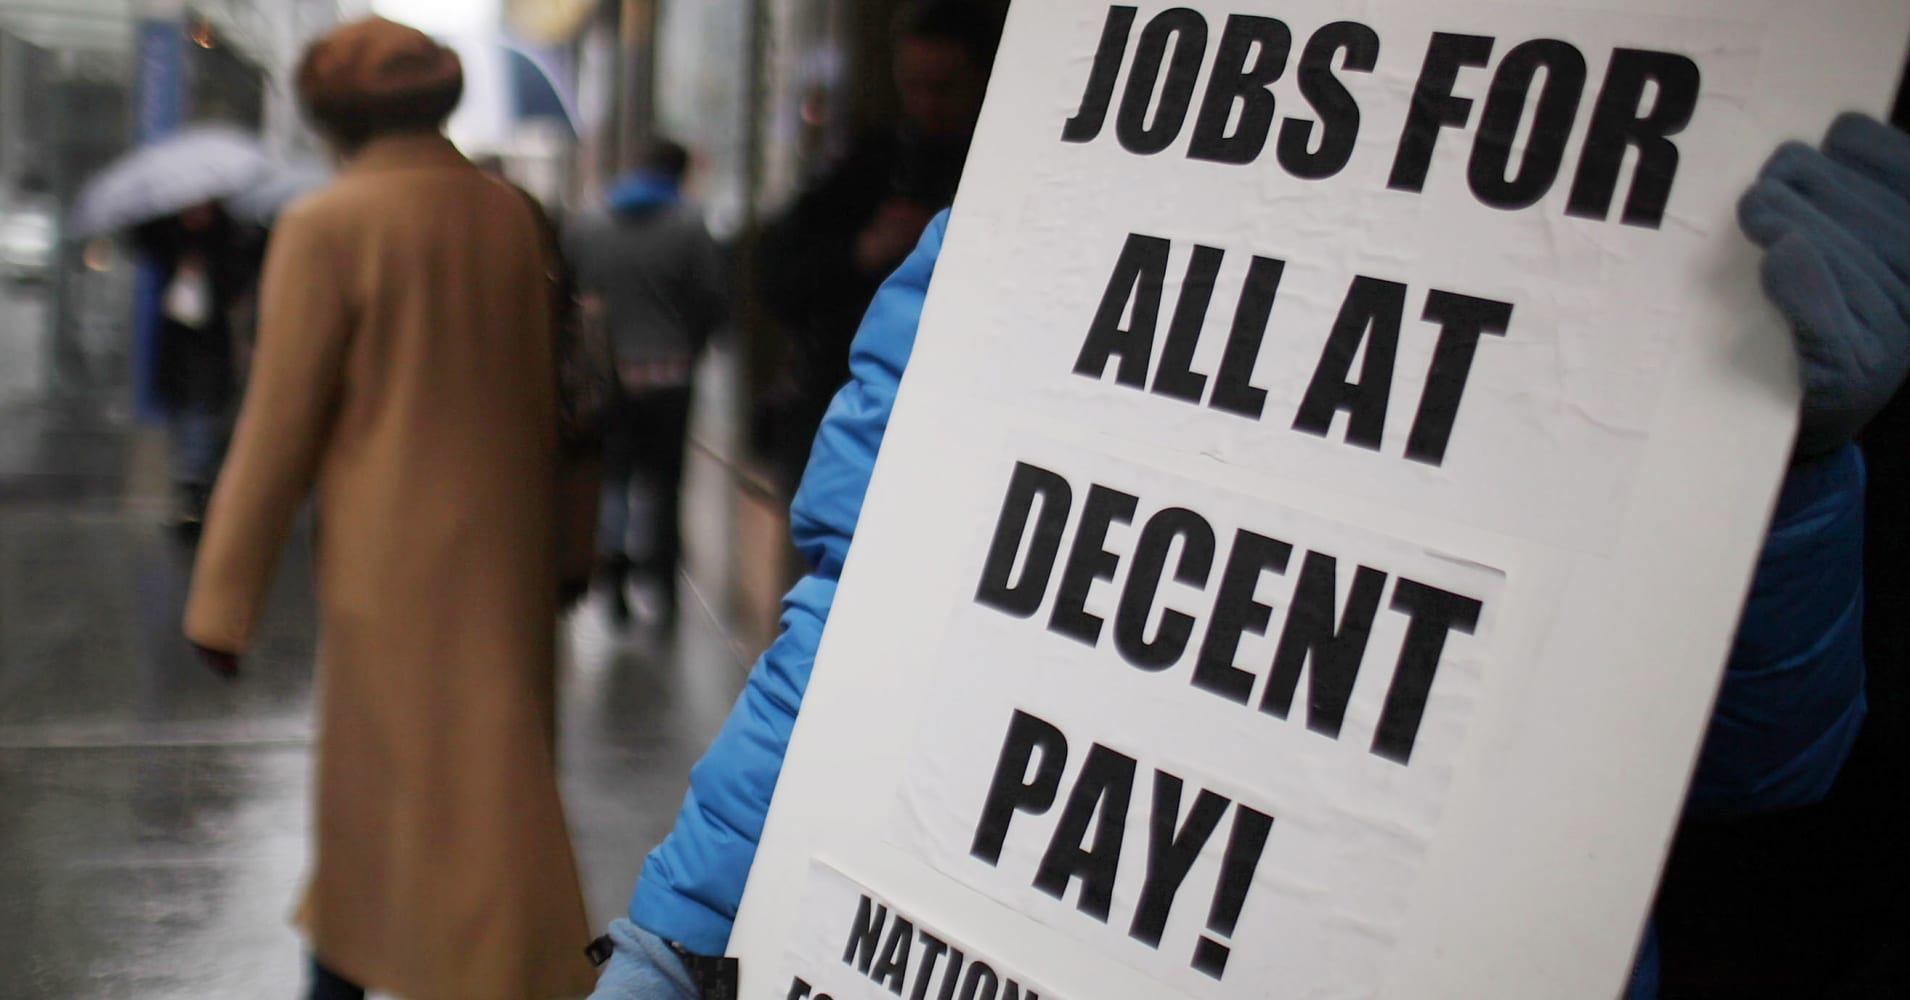 A protestor in New York City demands more jobs.